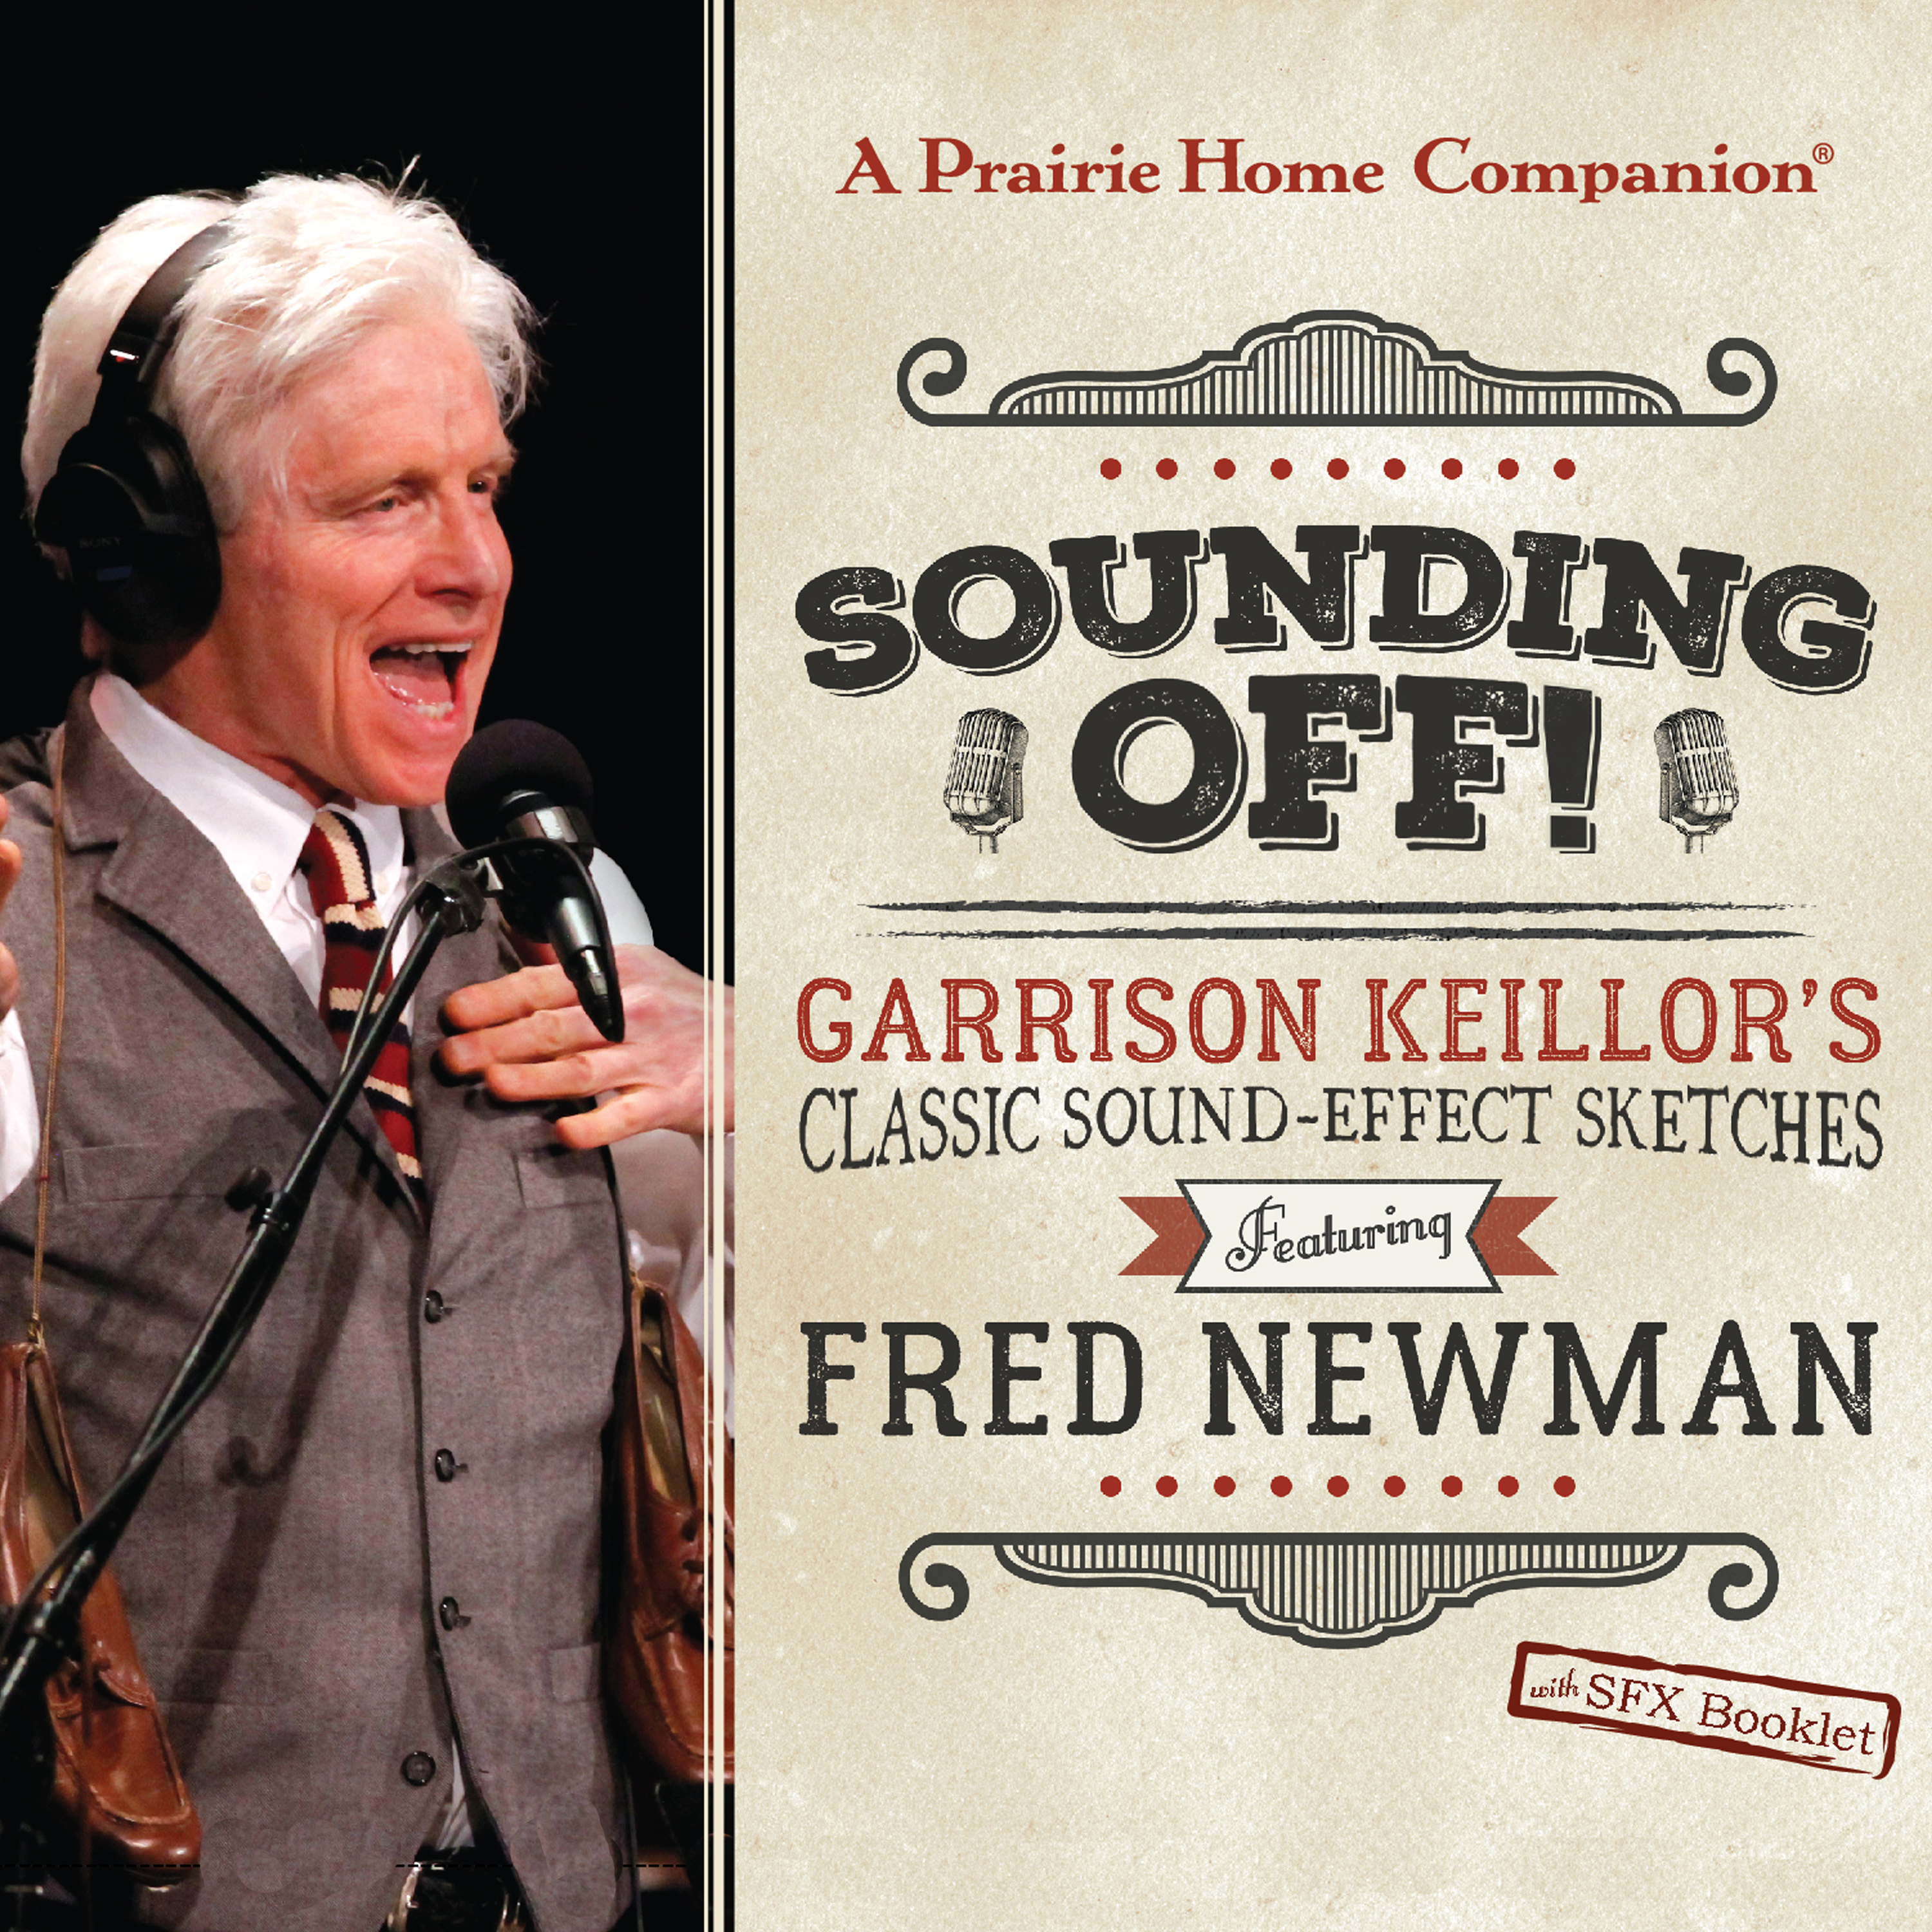 Printable Sounding Off! Garrison Keillor's Classic Sound Effect Sketches featuring Fred Newman: Garrison Keillor's Classic Sound Effect Sketches Featuring Fred Newman Audiobook Cover Art